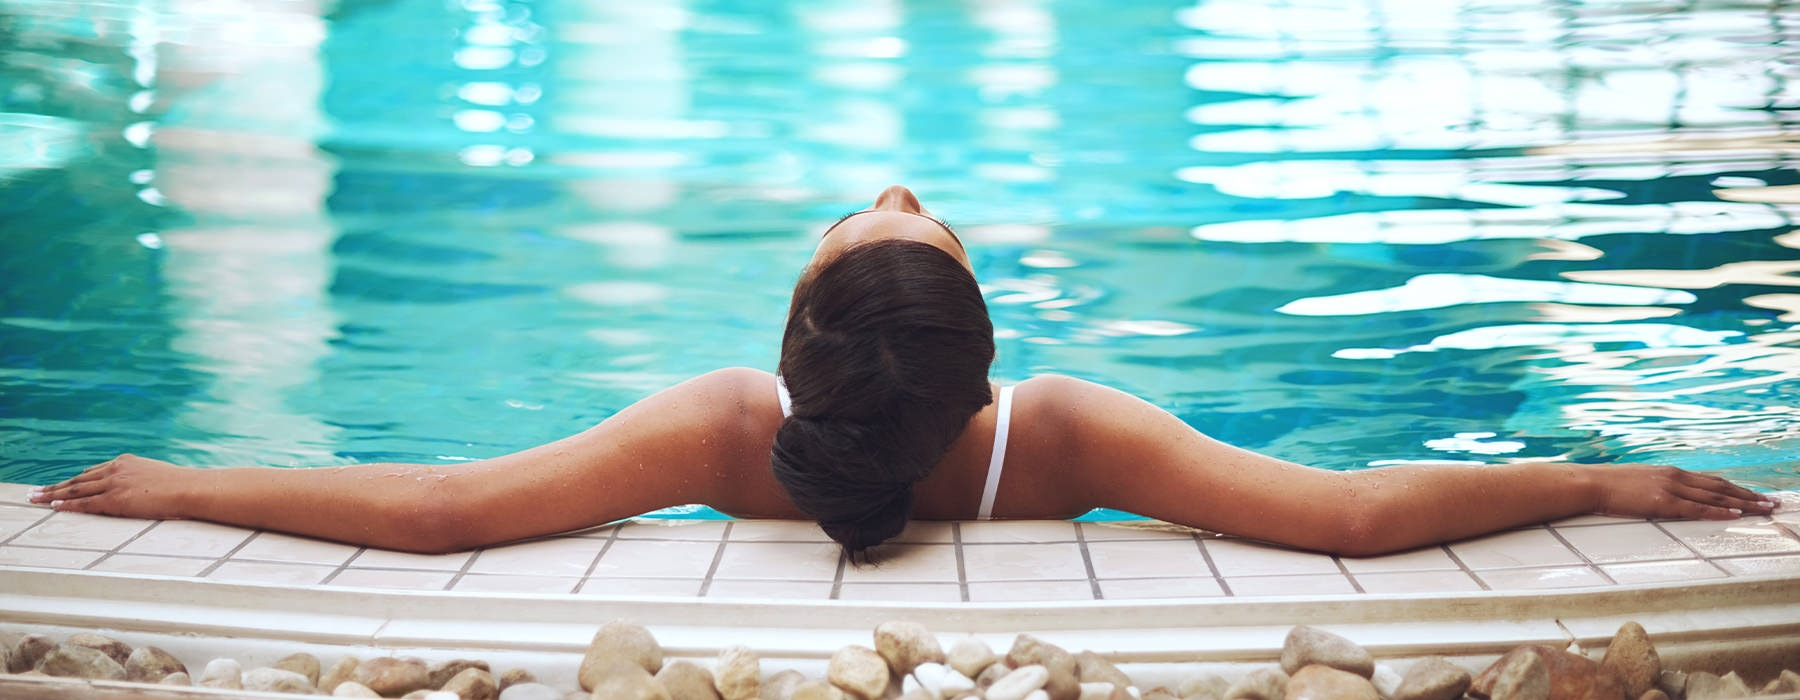 Woman lounging in a sparkling blue swimming pool